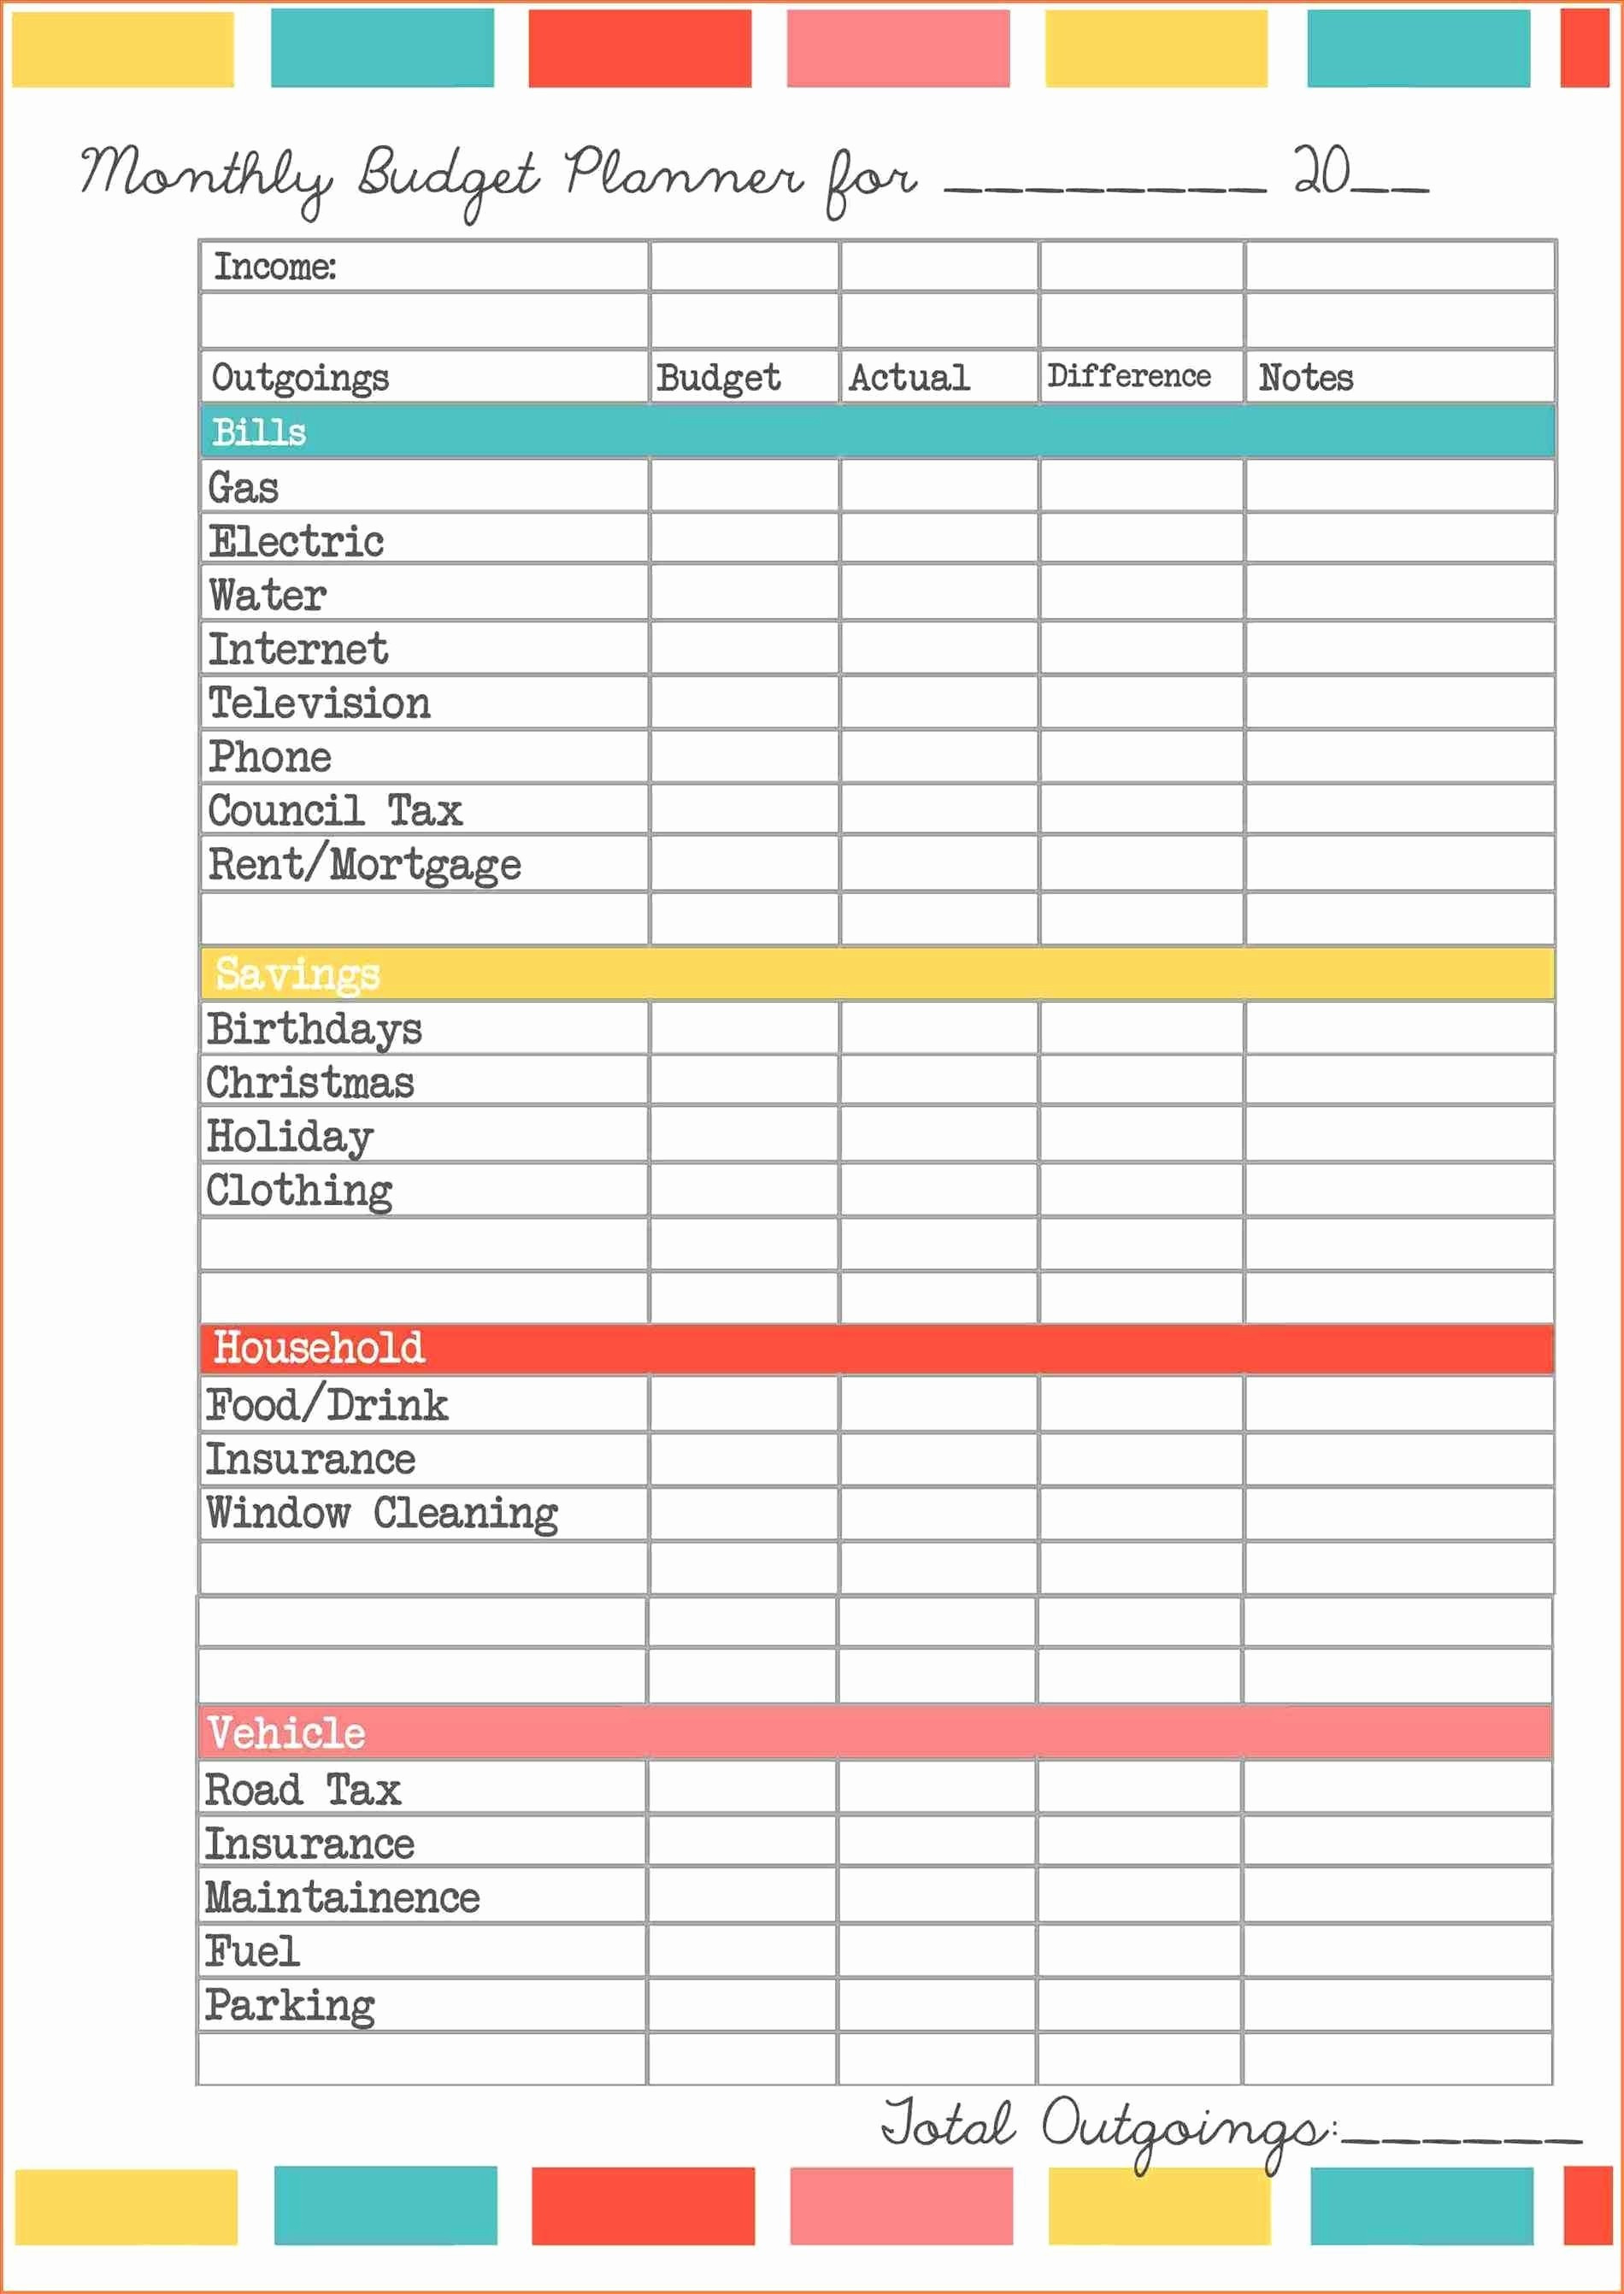 Accounting Spreadsheets For Small Business Free For Small Business Accounting Spreadsheet Invoice Template Uk Free